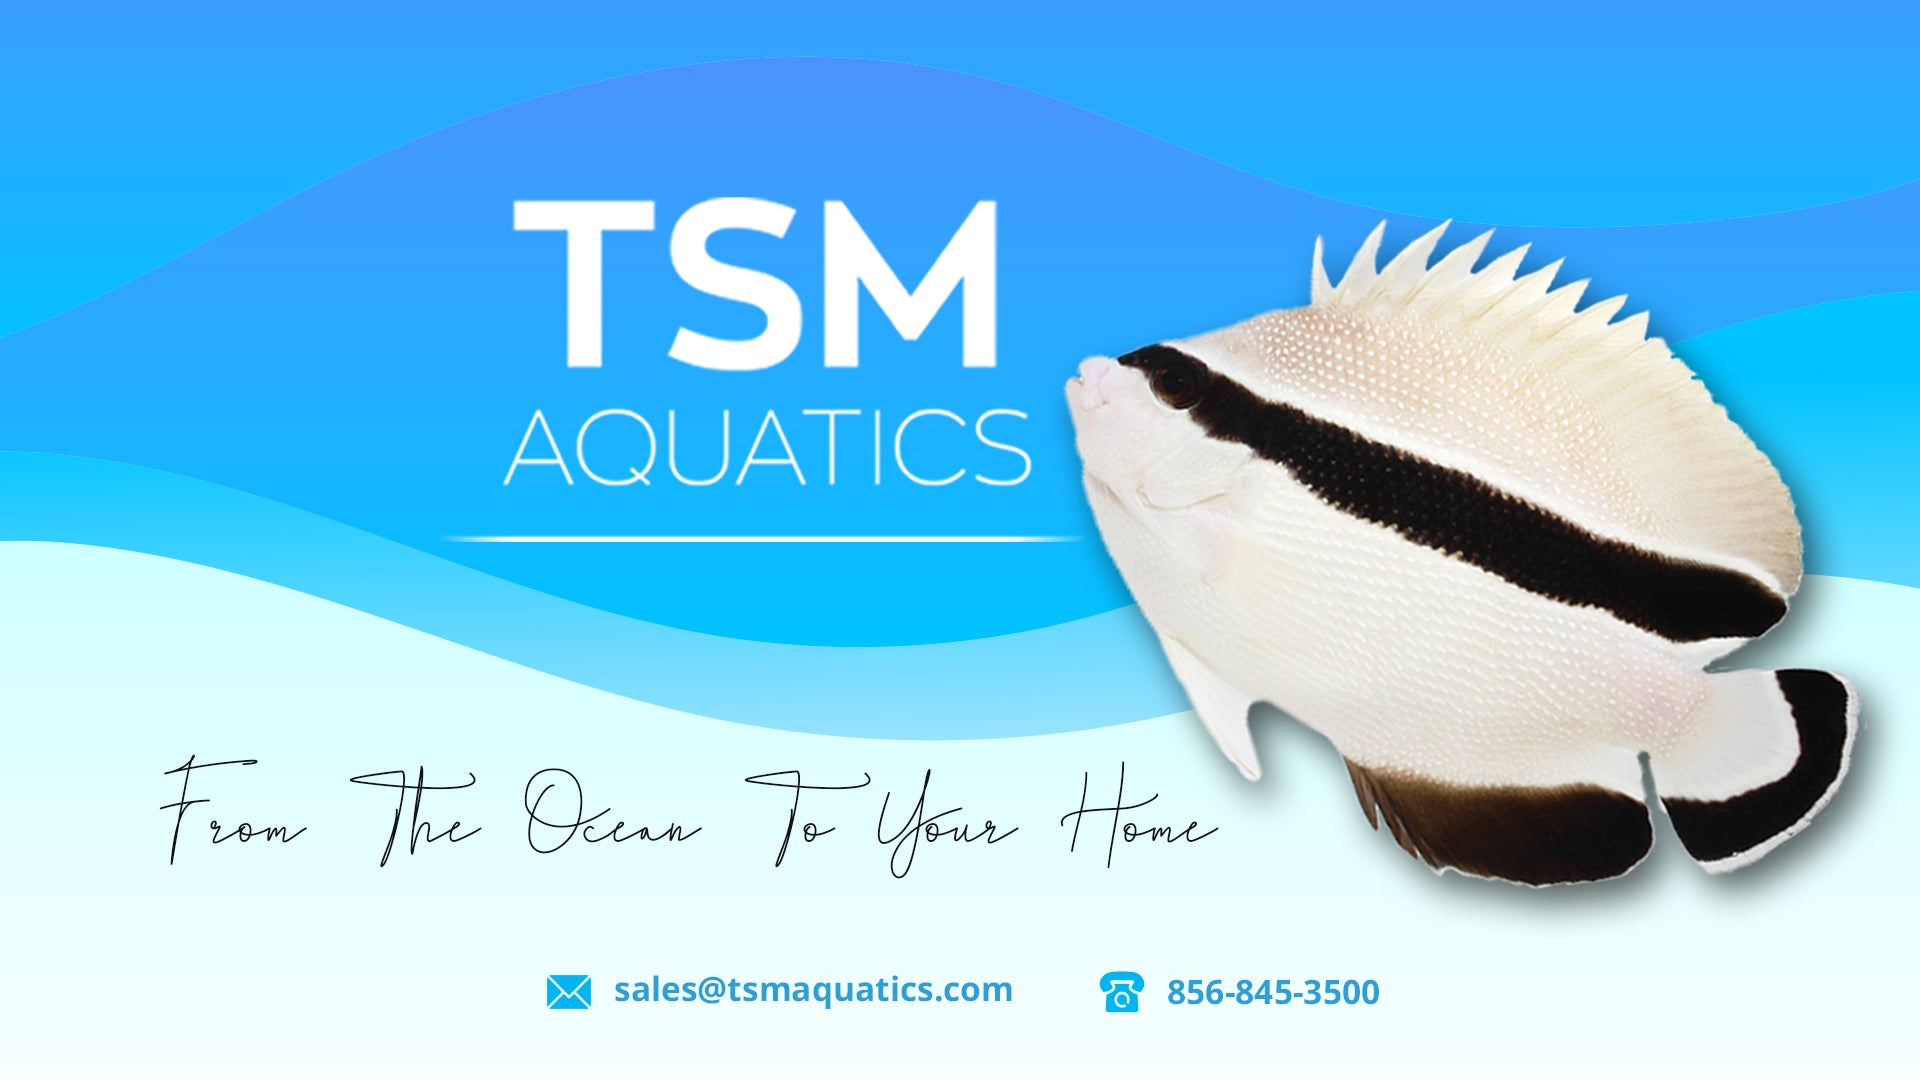 tsmaquatics.com